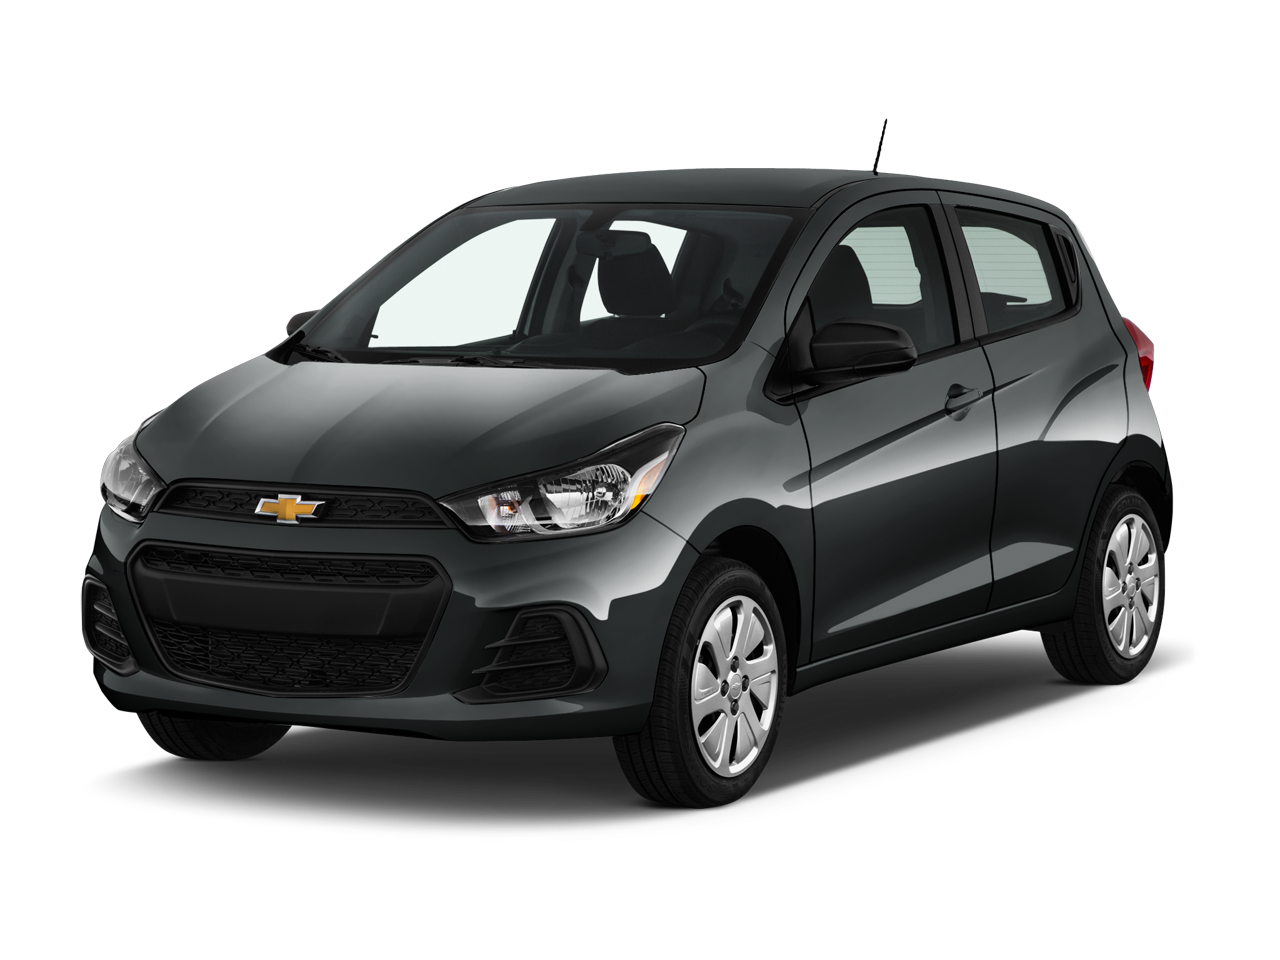 new chevrolet cvt fwd for sale lynch family of dealerships. Black Bedroom Furniture Sets. Home Design Ideas